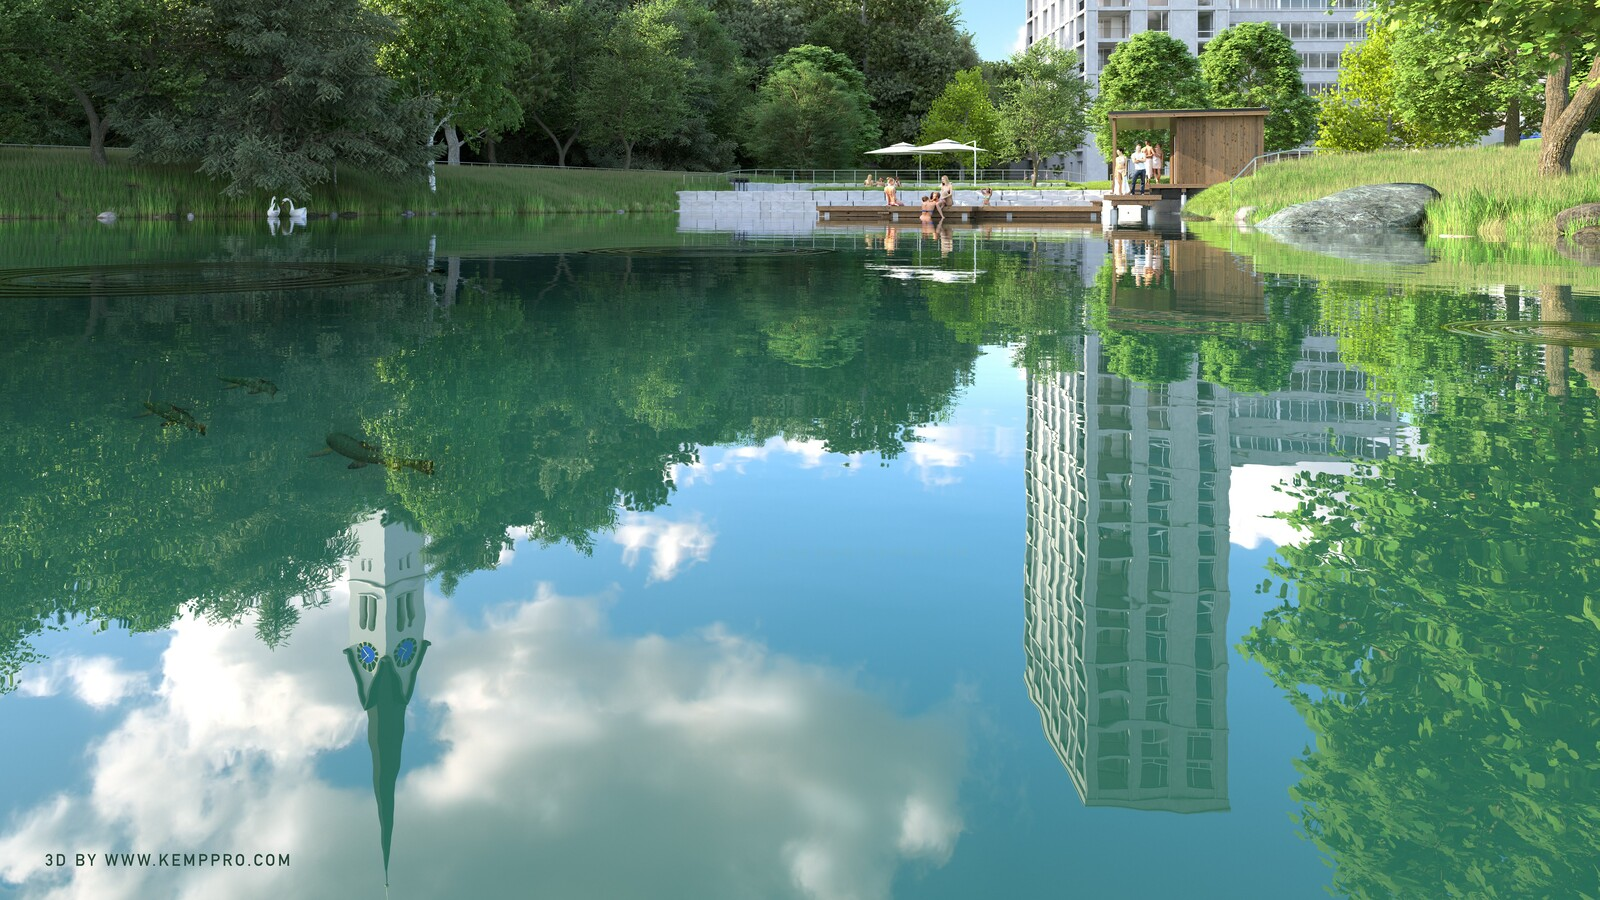 SketchUp 2019 + Thea Render  Terrain morph test 04 -Fish Reflection Final 10h23m40s 5333x3000 1024 s-p MC Bucket 4  Integrated use of Skatter by Lindalë and Laubwerk  HDR by HDRI-SKIES found here: http://hdri-skies.com/shop/hdri-sky-162